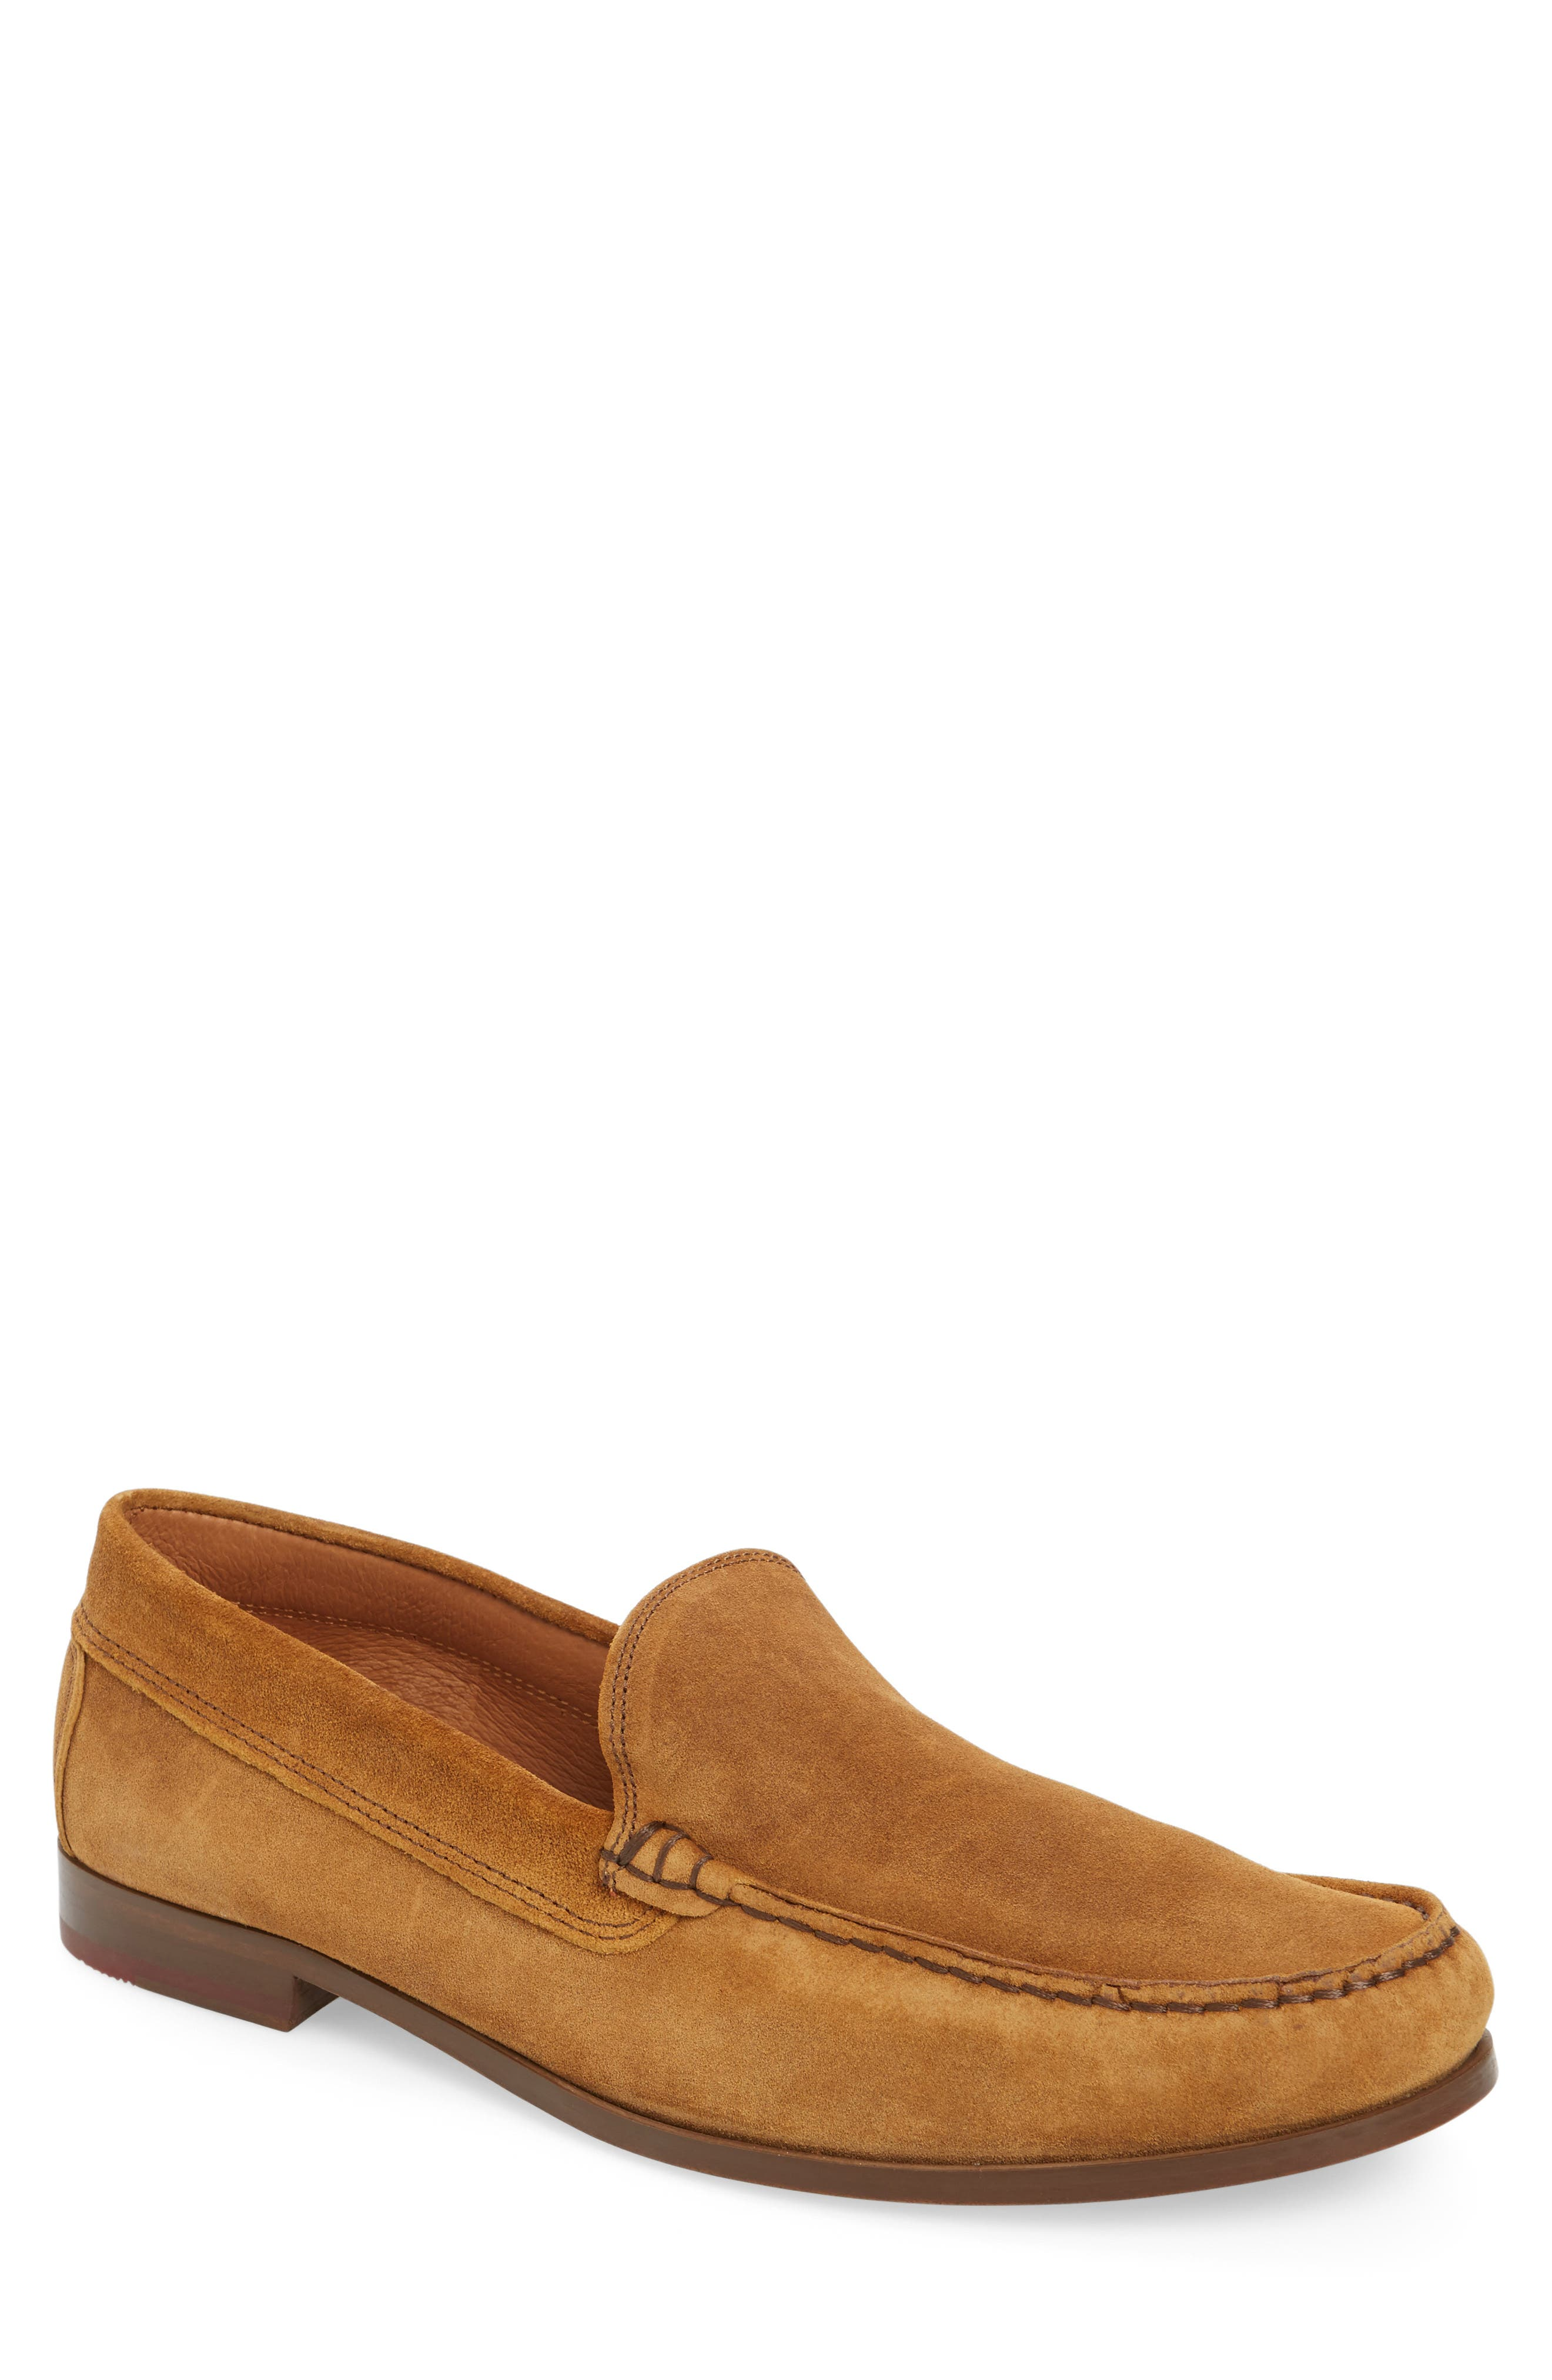 Donald J Pliner 'Nate' Loafer,                             Main thumbnail 3, color,